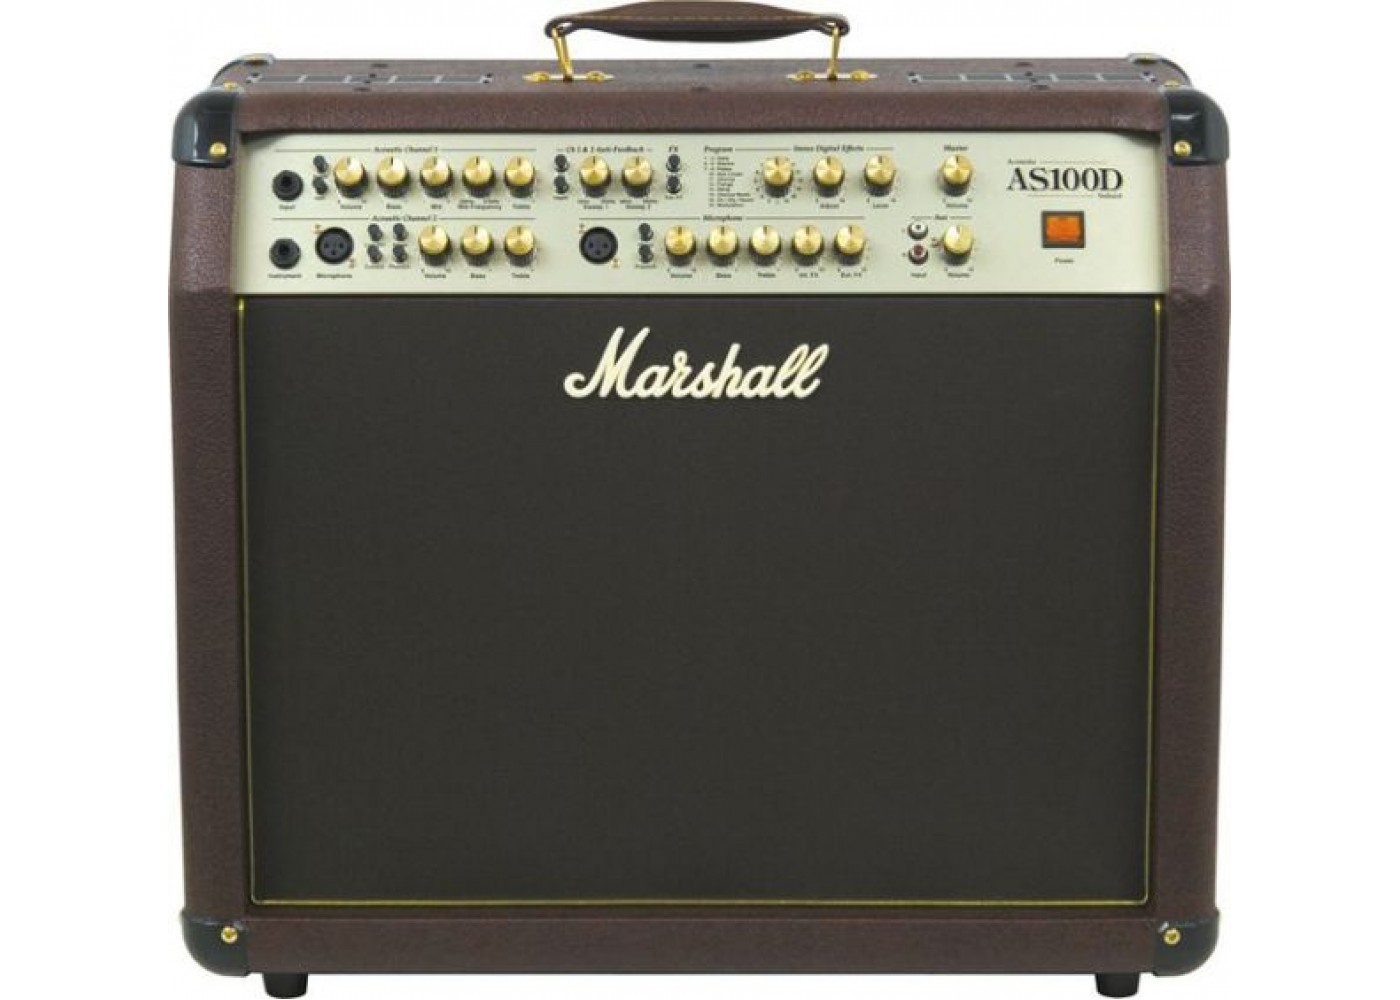 marshall as100d 2 channel acoustic guitar amplifier with effects. Black Bedroom Furniture Sets. Home Design Ideas